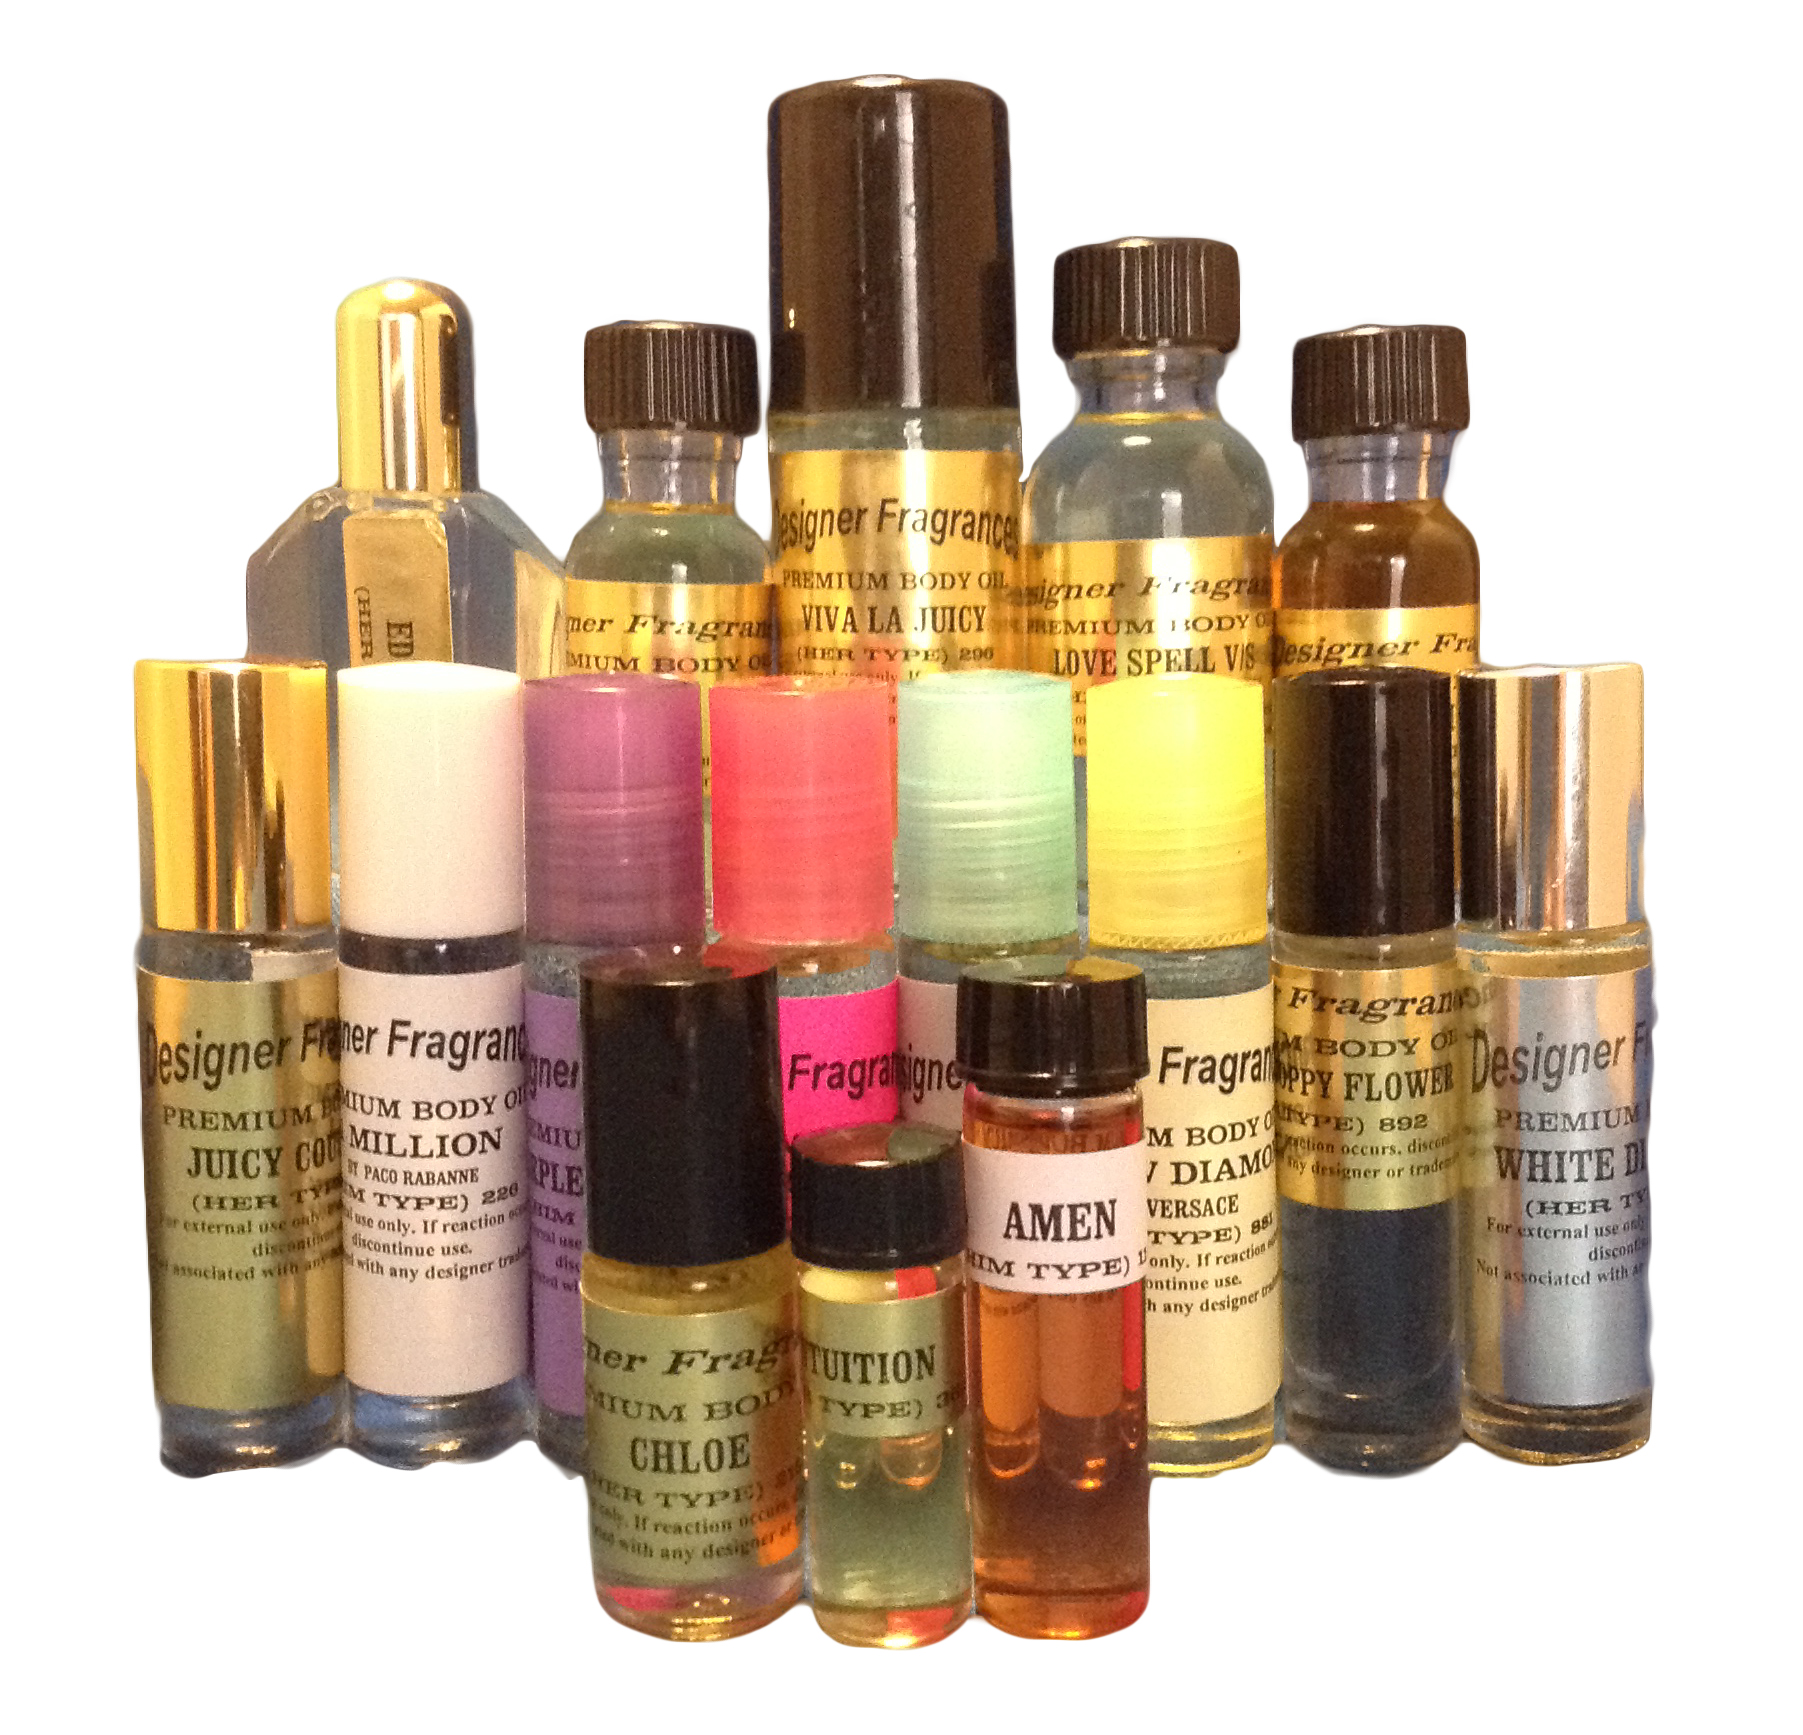 Body Oils Wholesale Fragrance Oils Perfume Oils Scented Oils